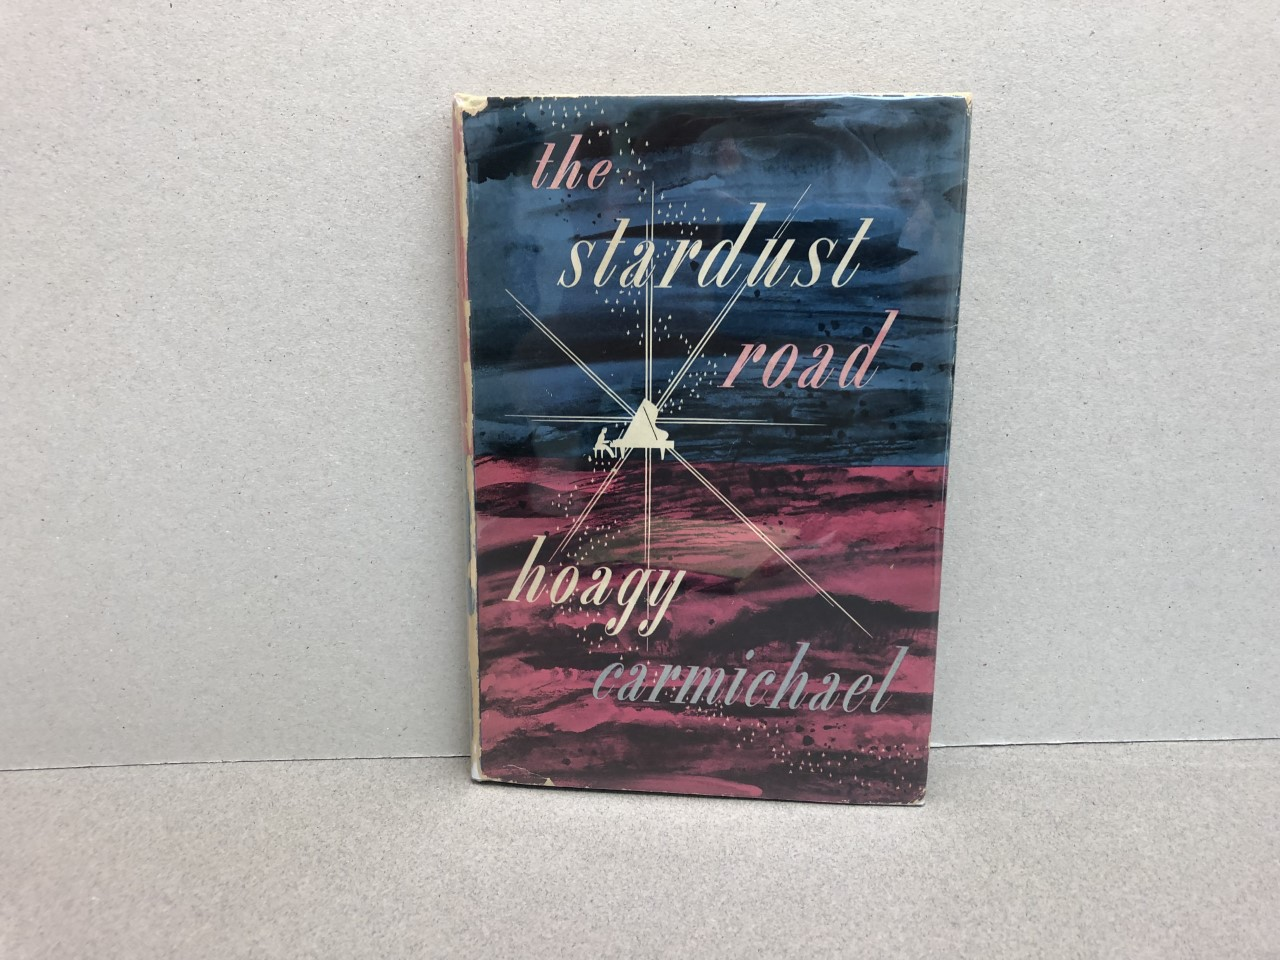 Image for THE STARDUST ROAD (signed)